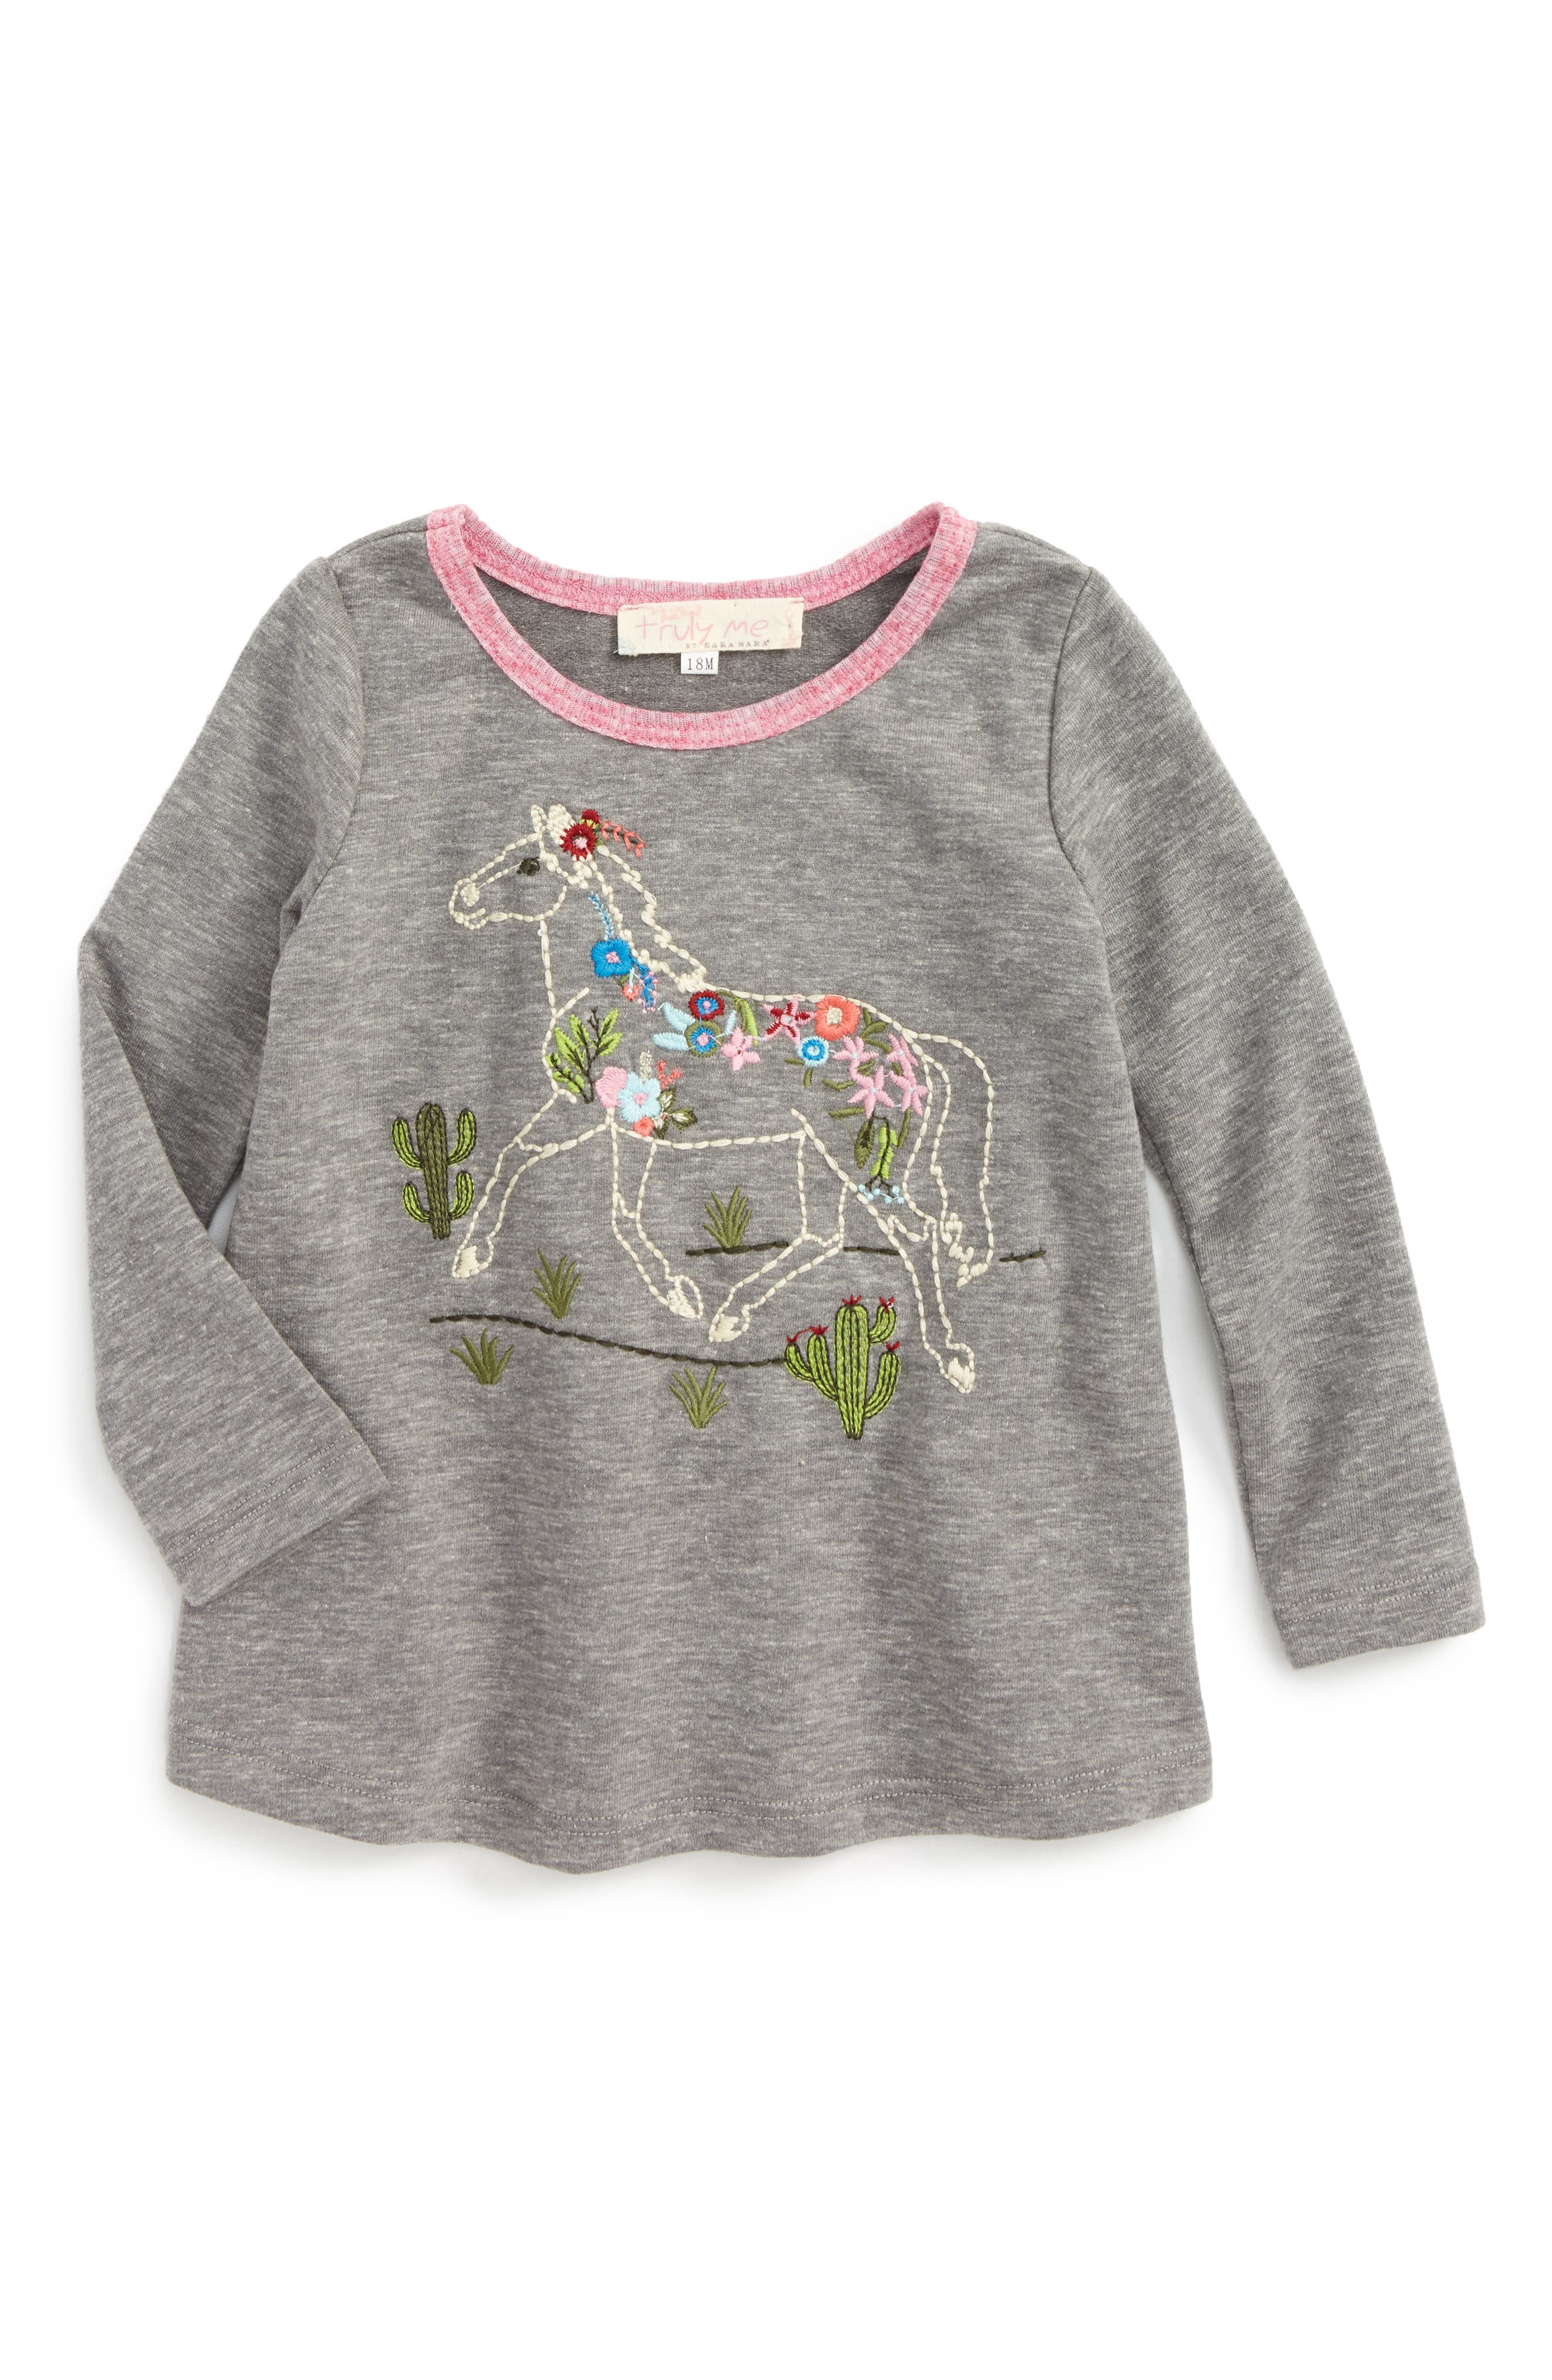 Embroidered Horse Tee,                             Main thumbnail 1, color,                             024